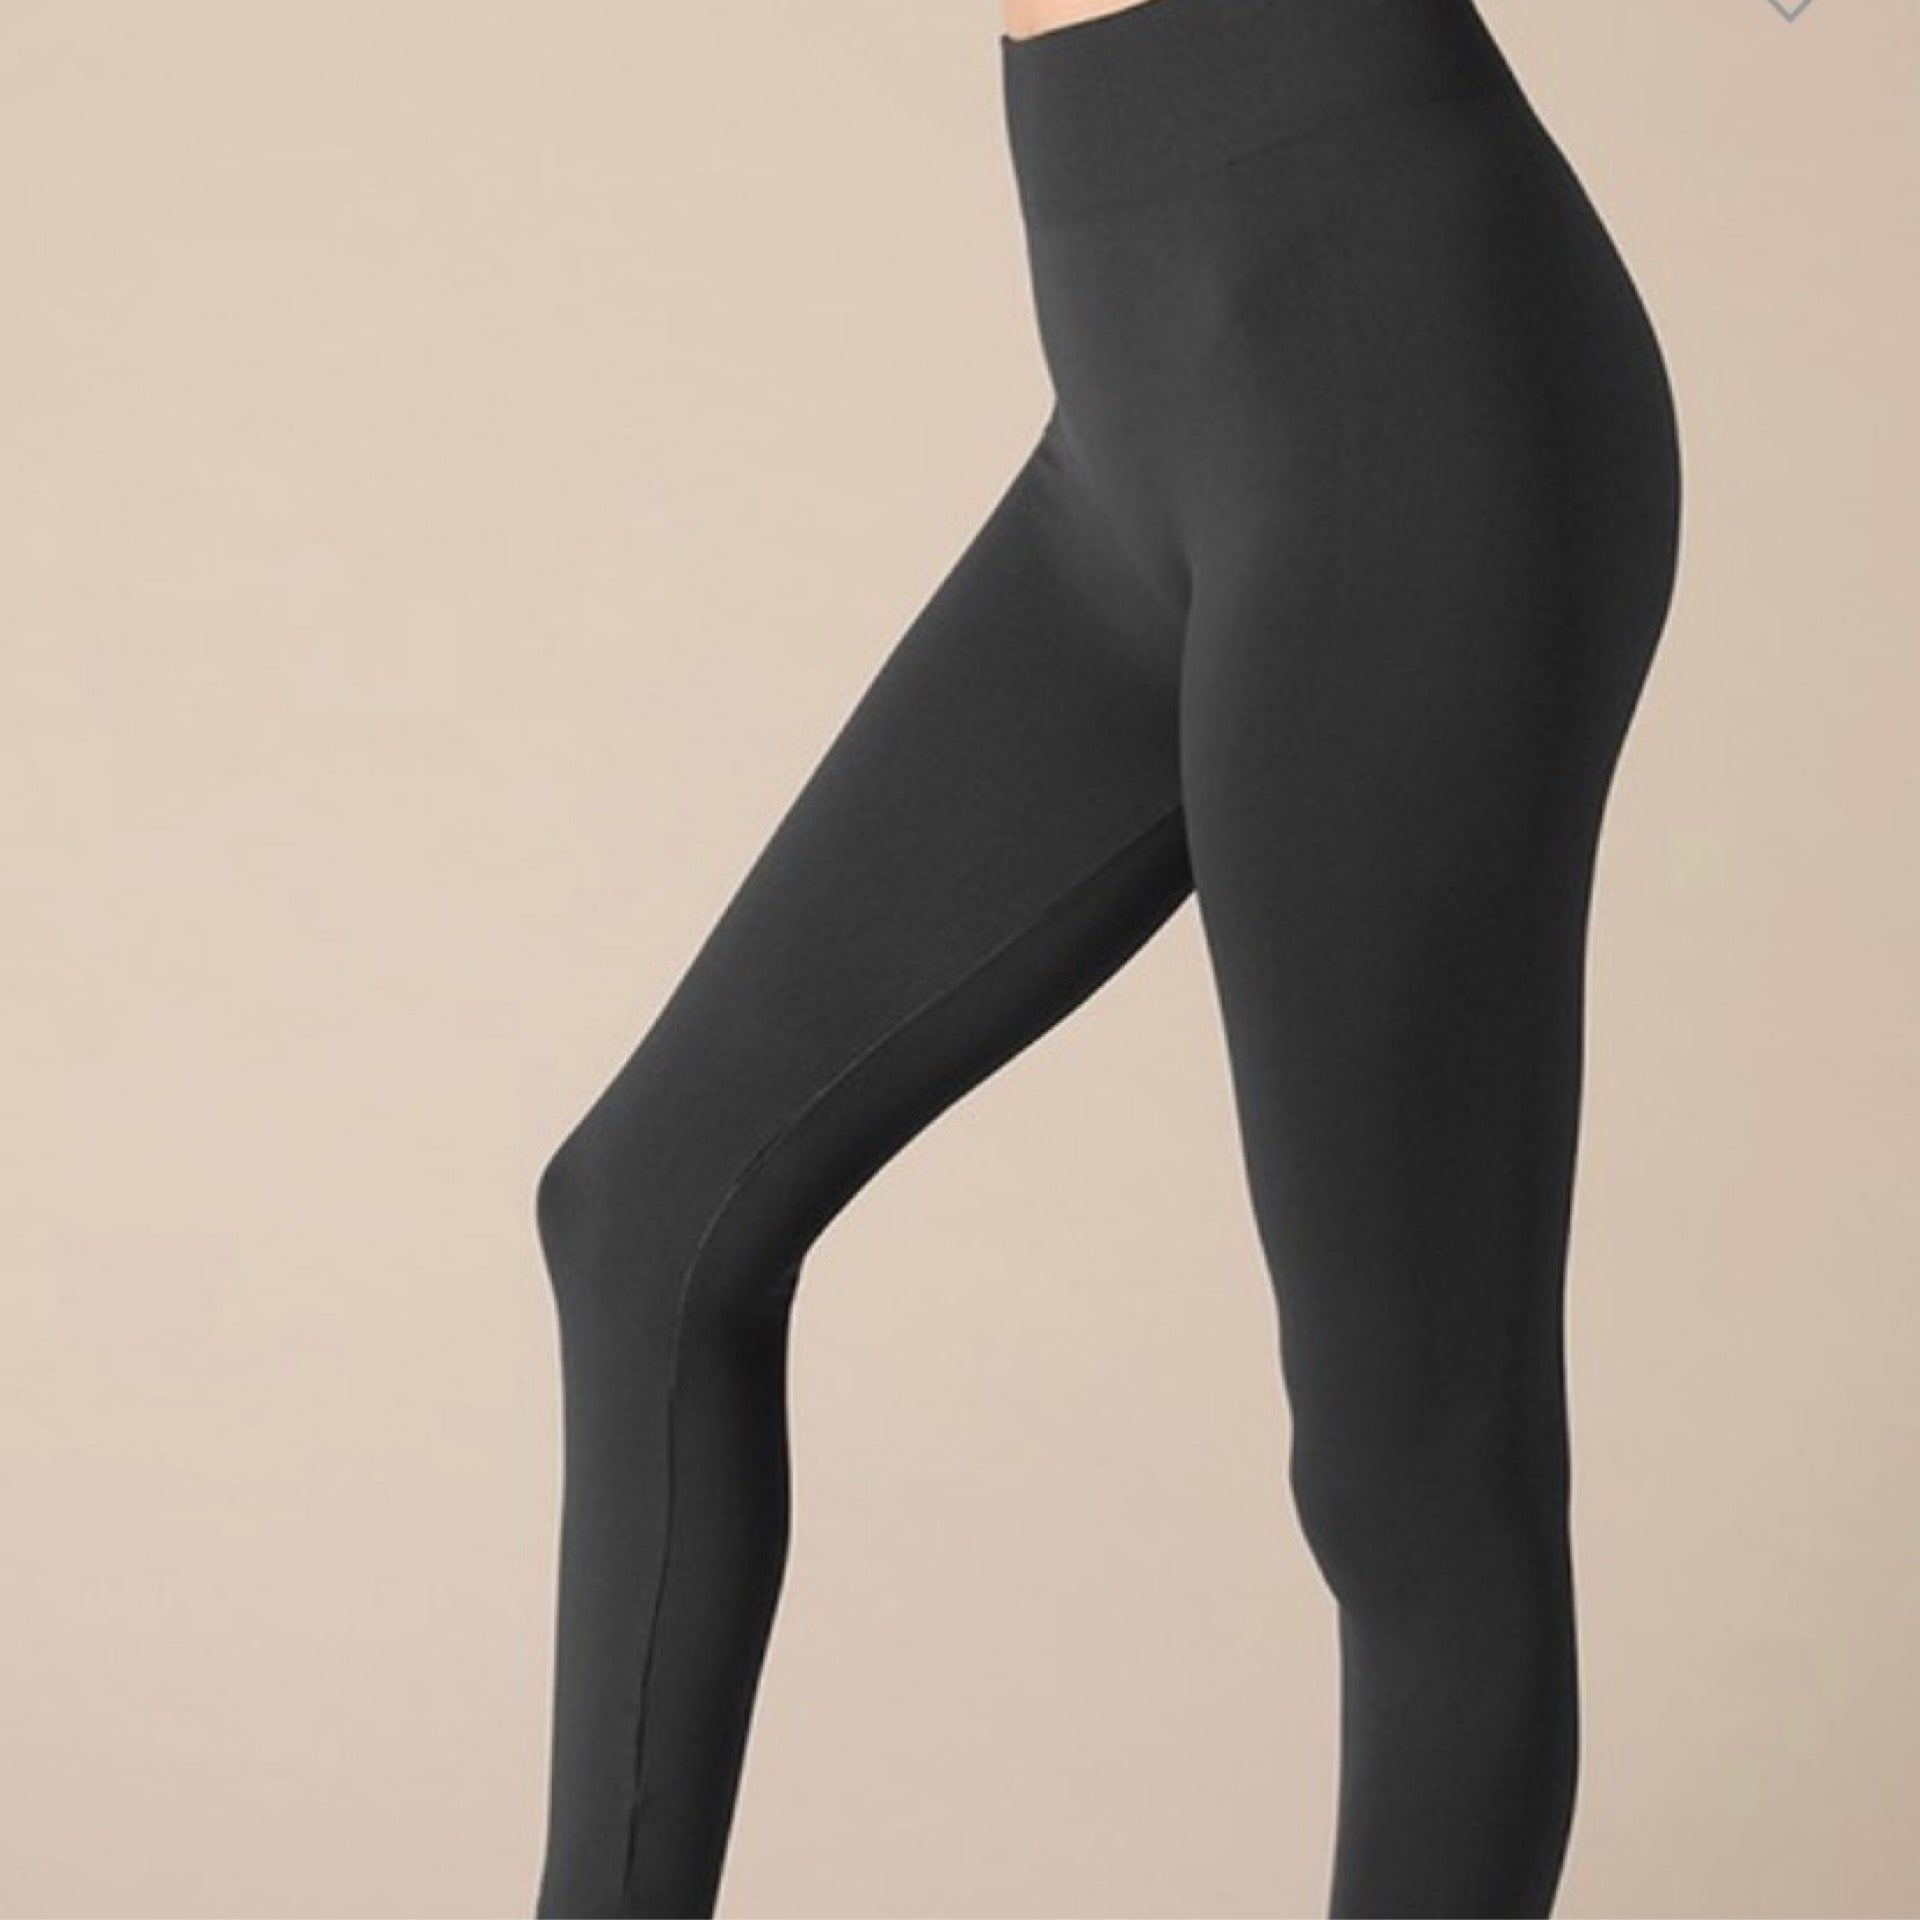 Charcoal Solid High Waisted Leggings - One Size